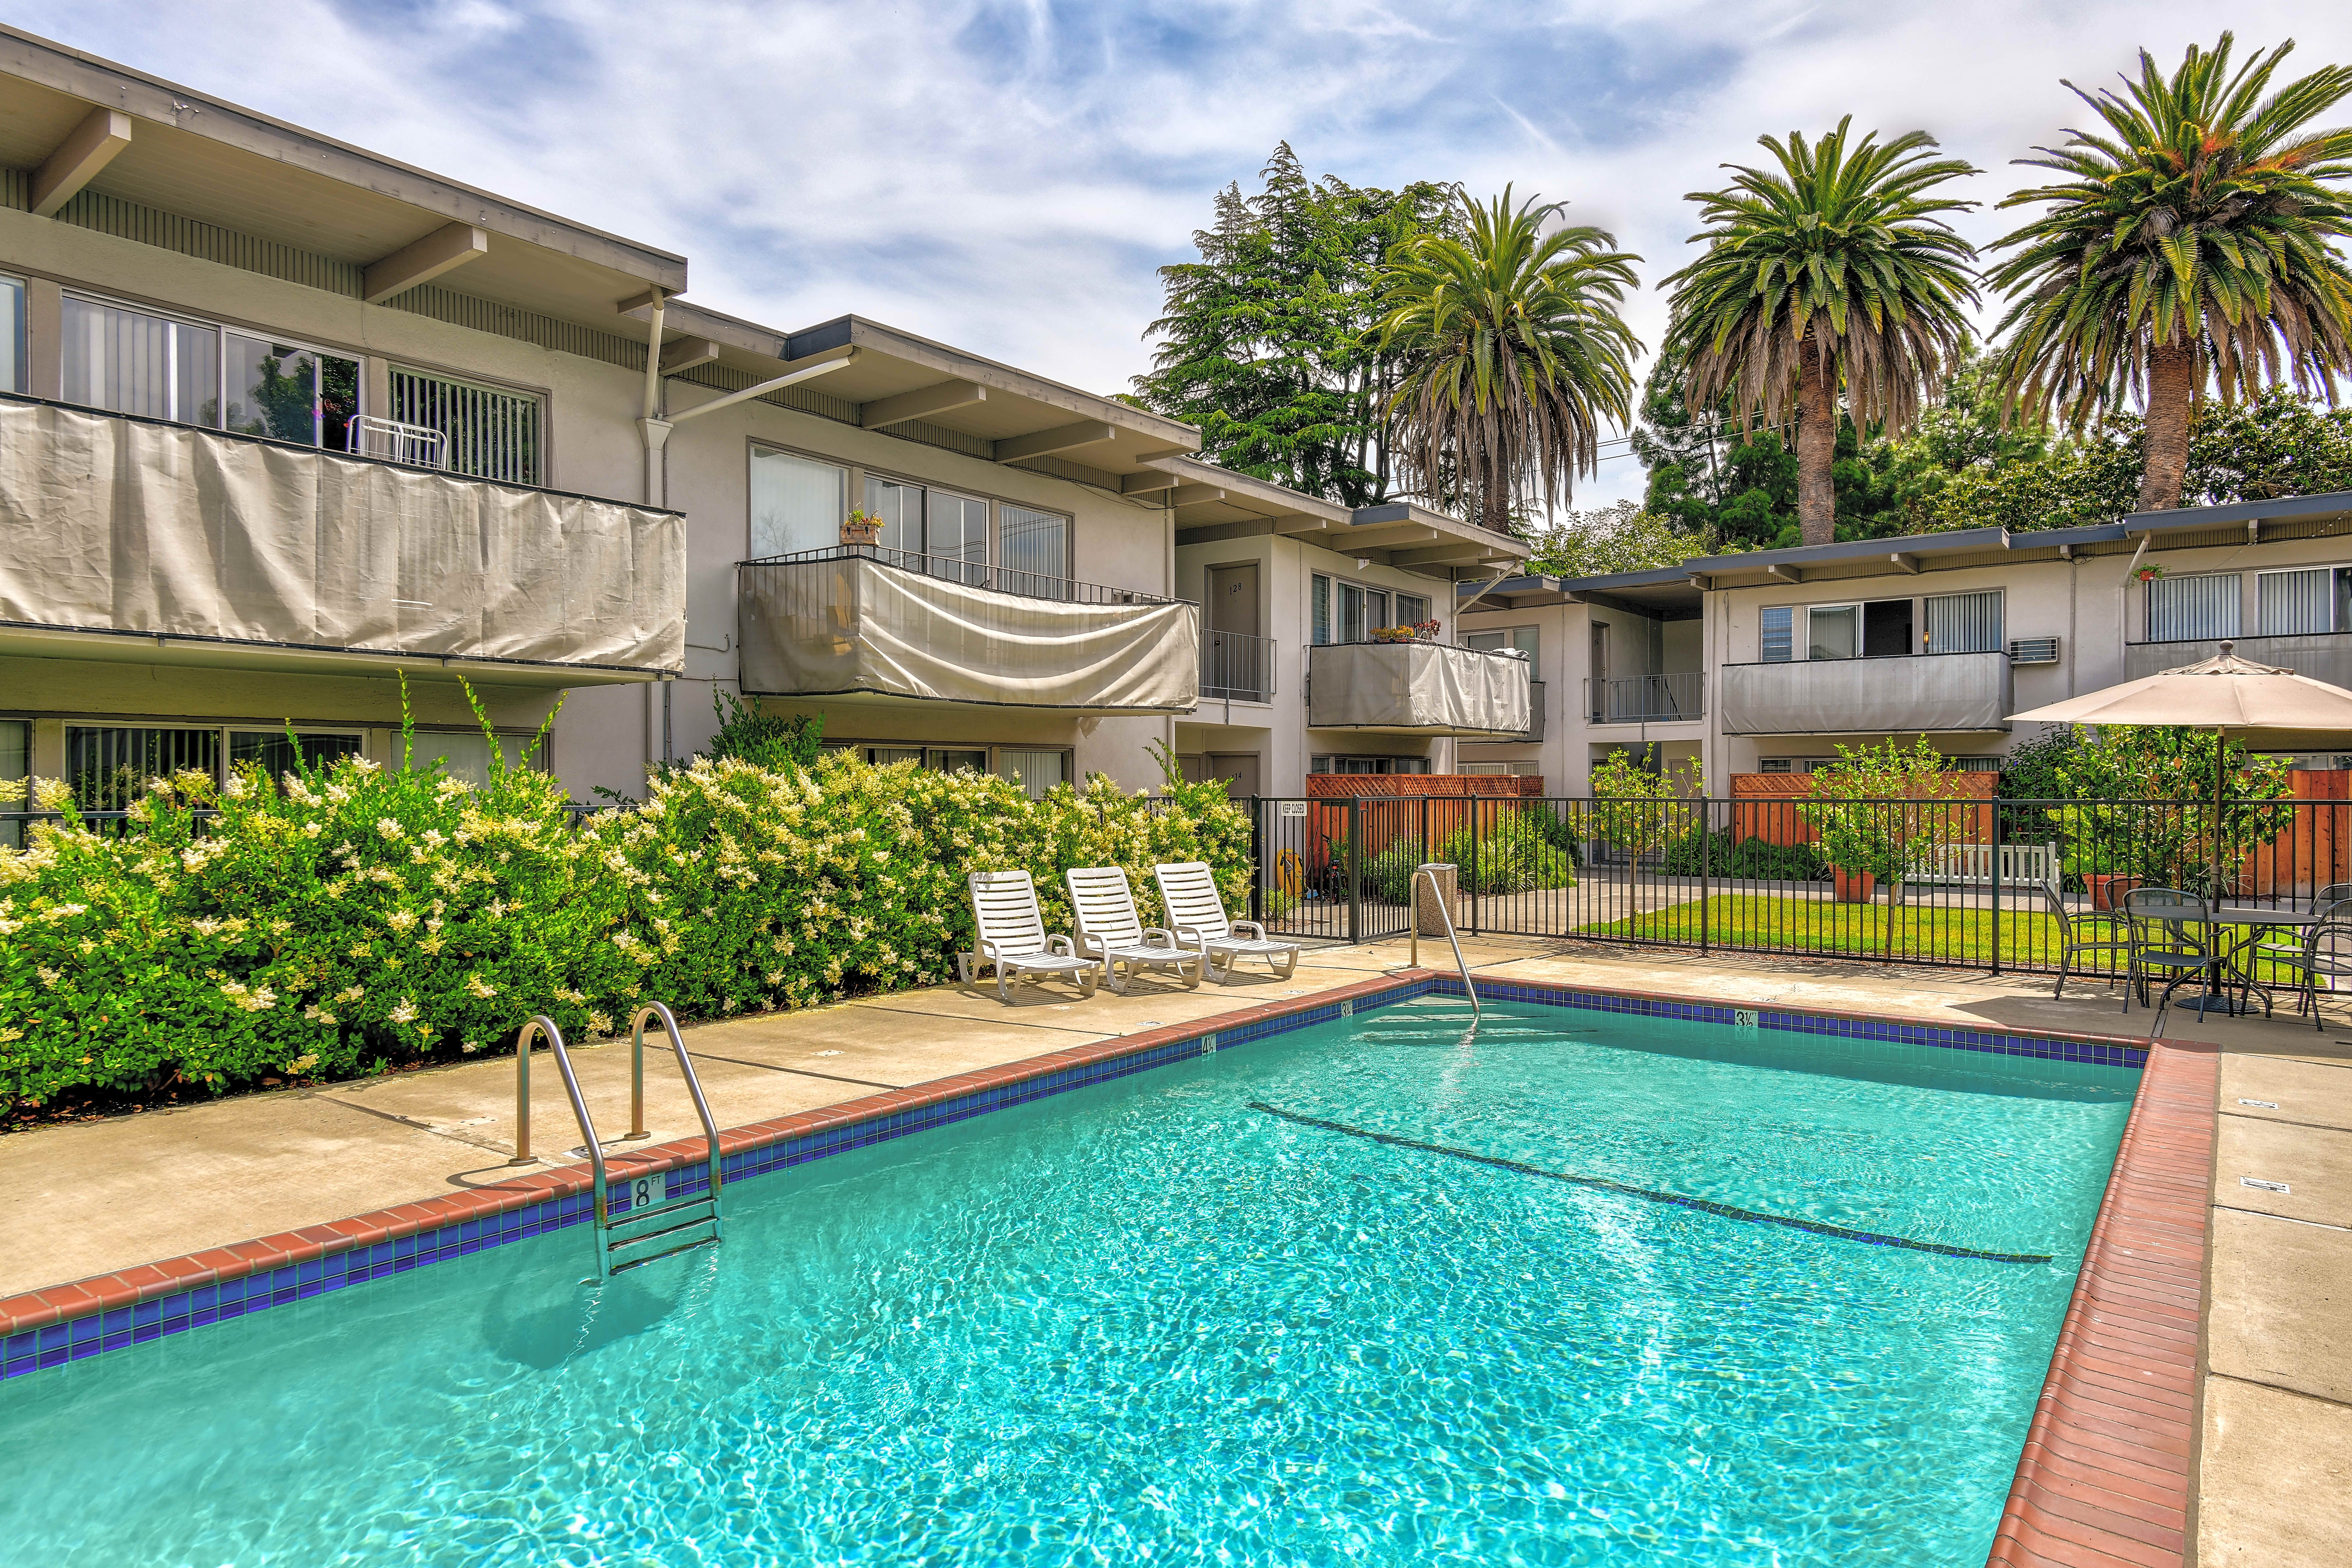 Apartments Near Foothill Glenwood for Foothill College Students in Los Altos Hills, CA